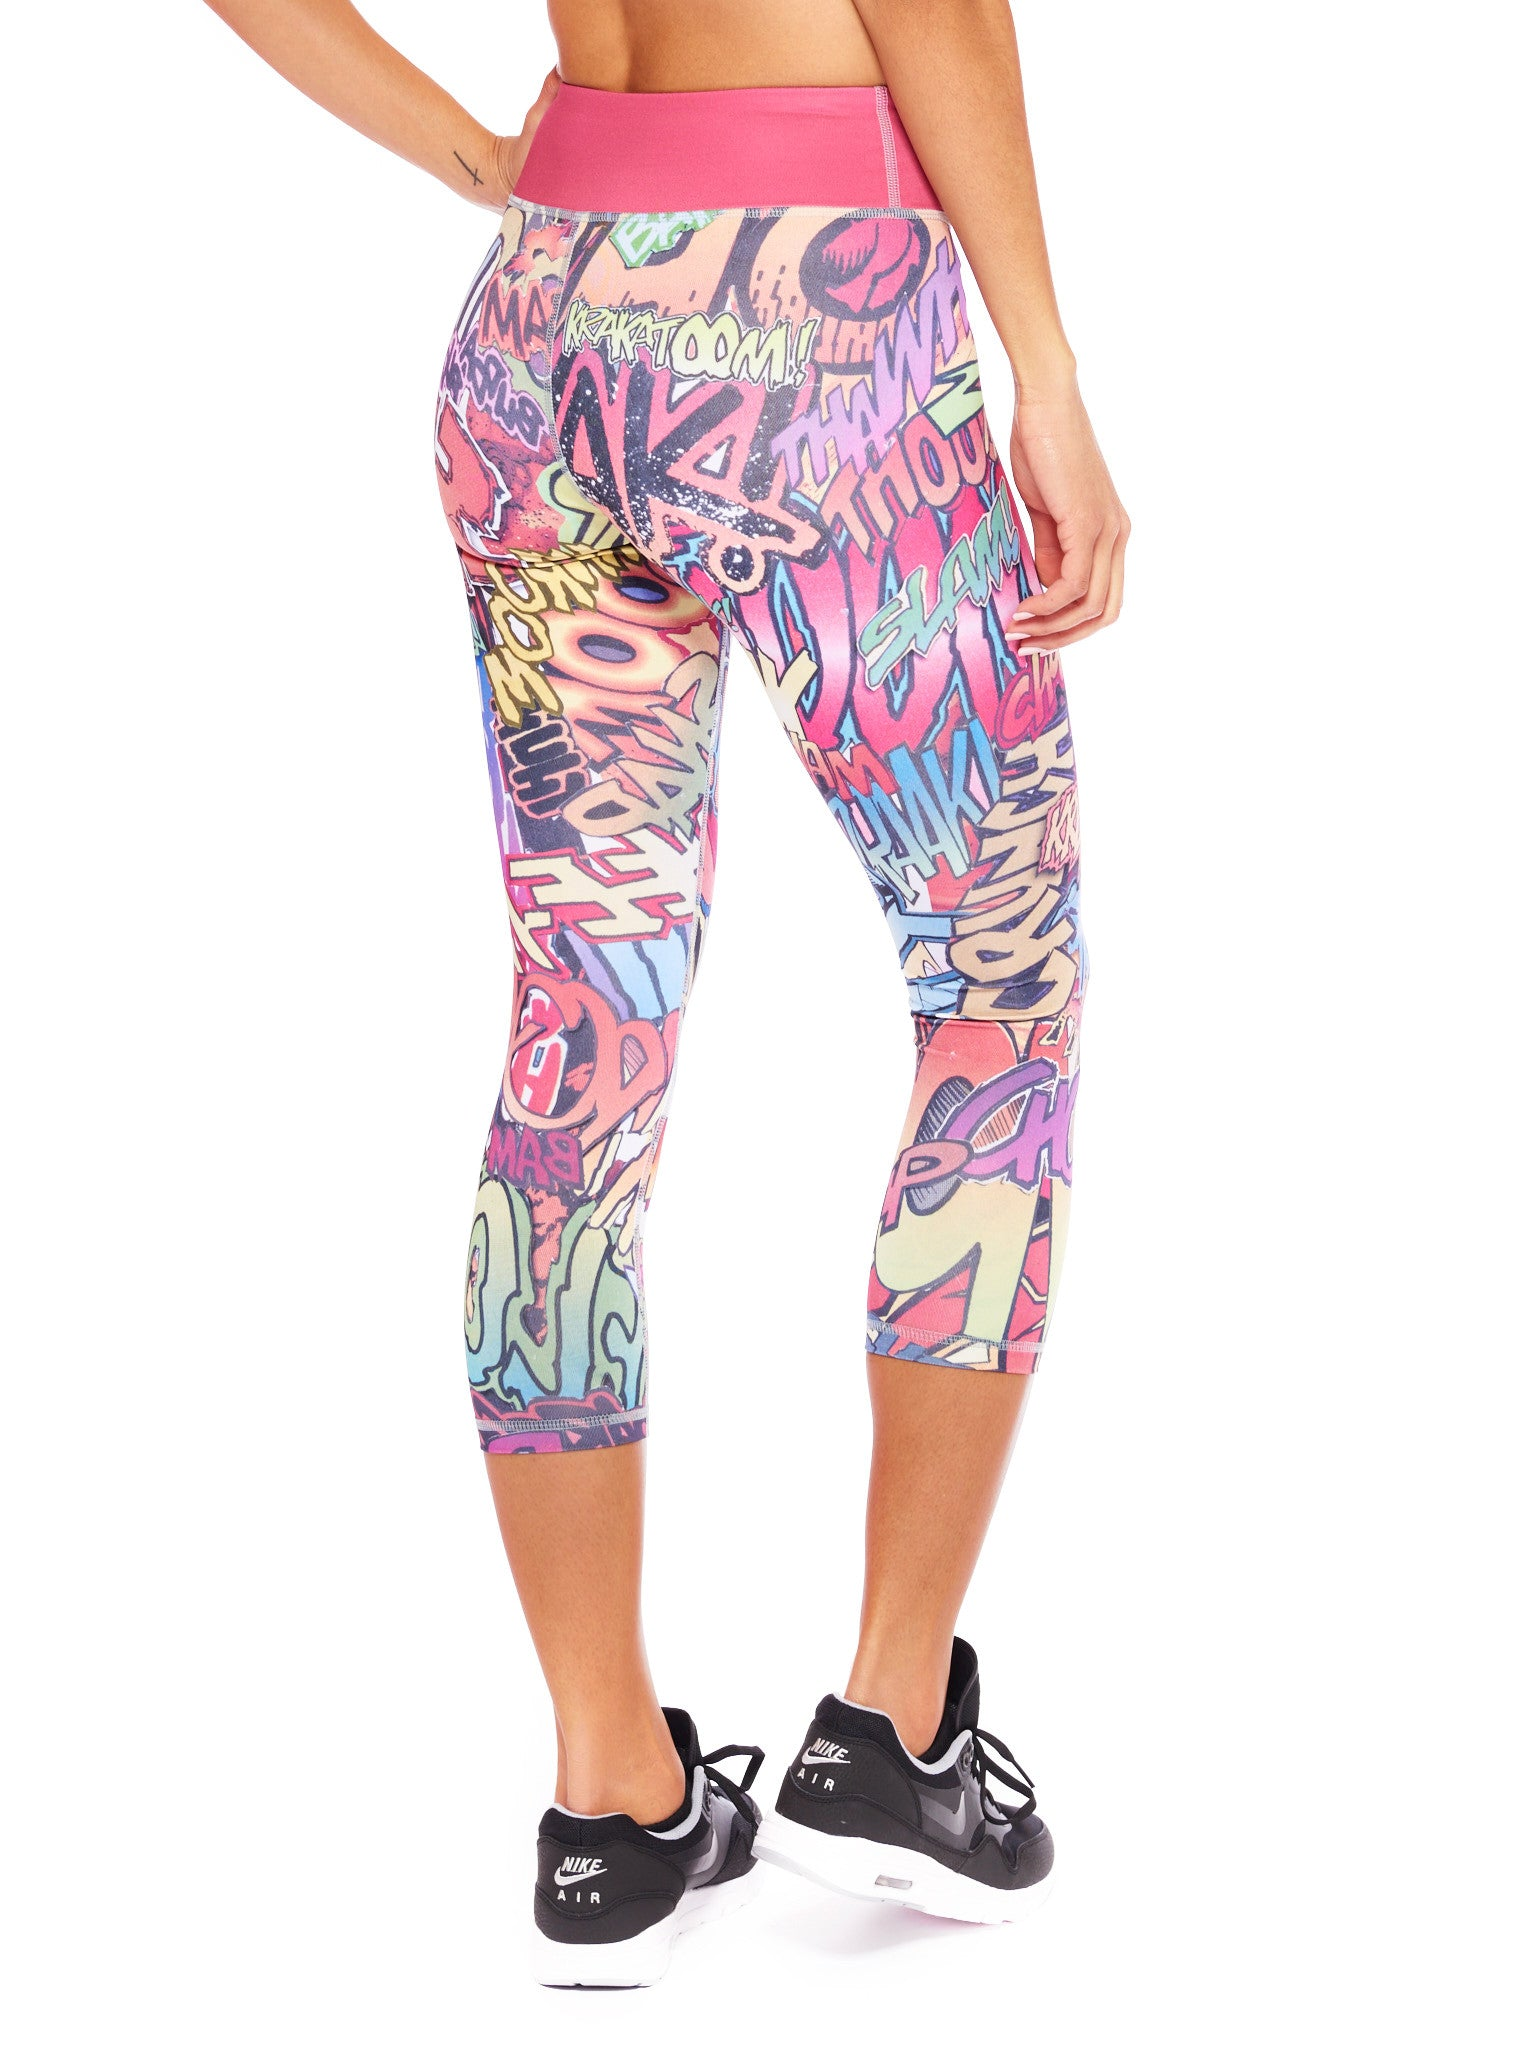 Action Packed Crop Leggings - Nuvango Gallery & Goods - 3